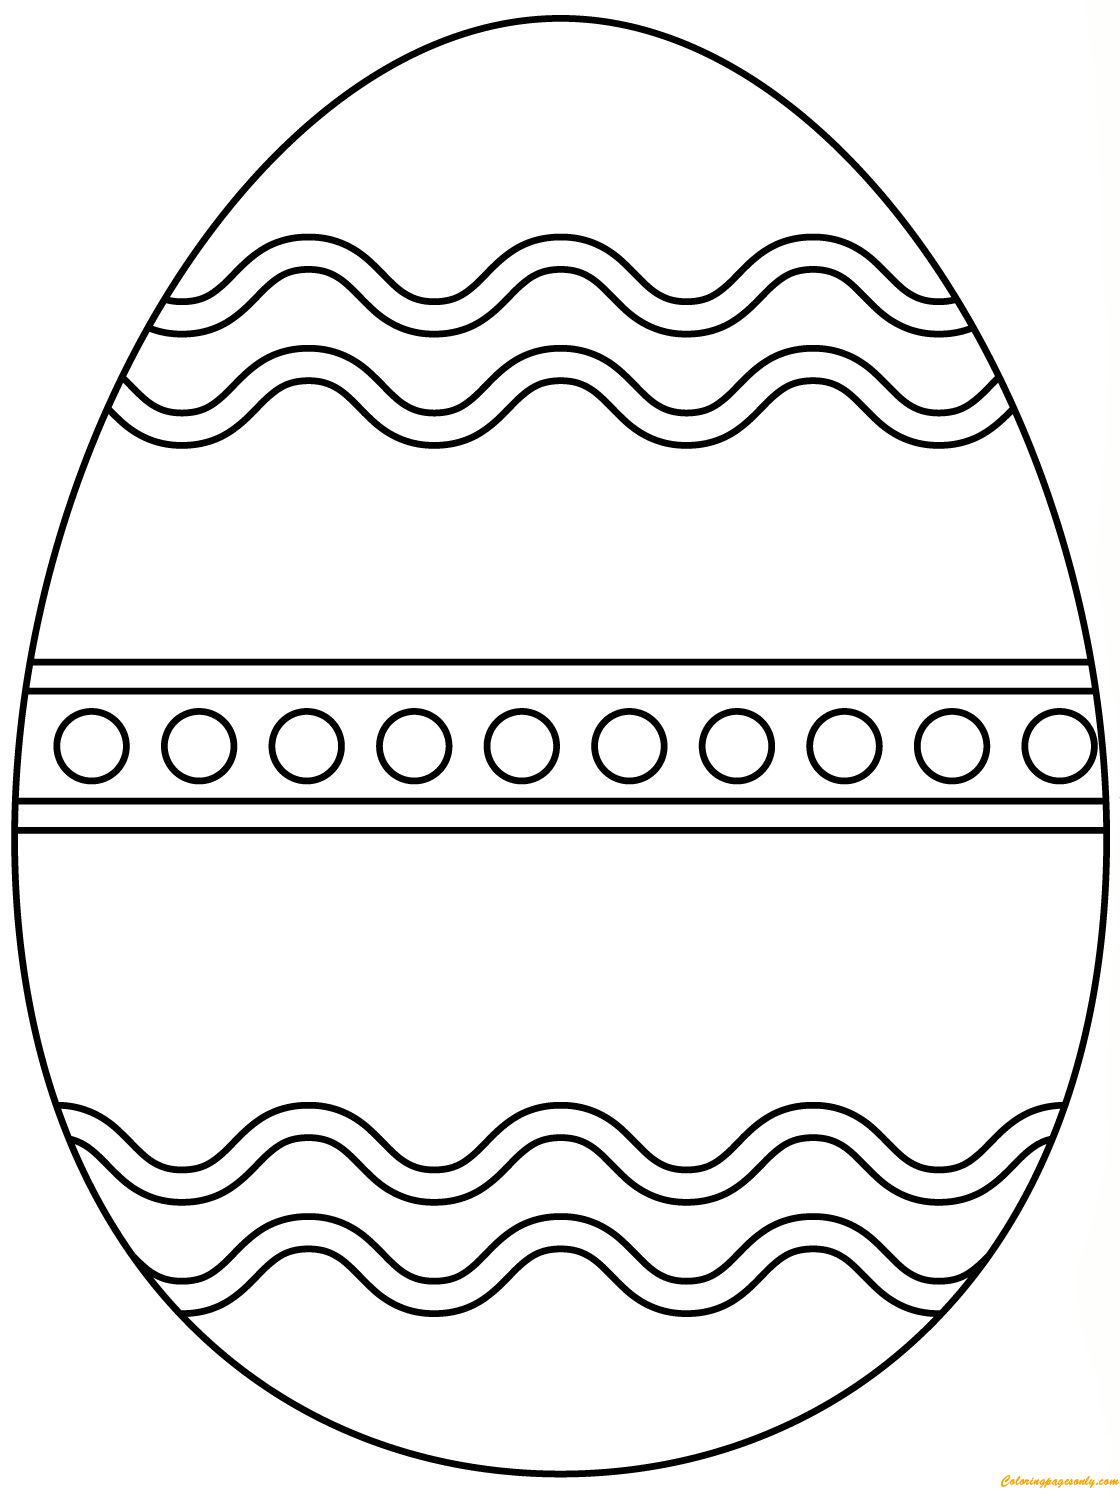 plain easter egg coloring pages plain easter egg coloring page free coloring pages online pages coloring easter egg plain